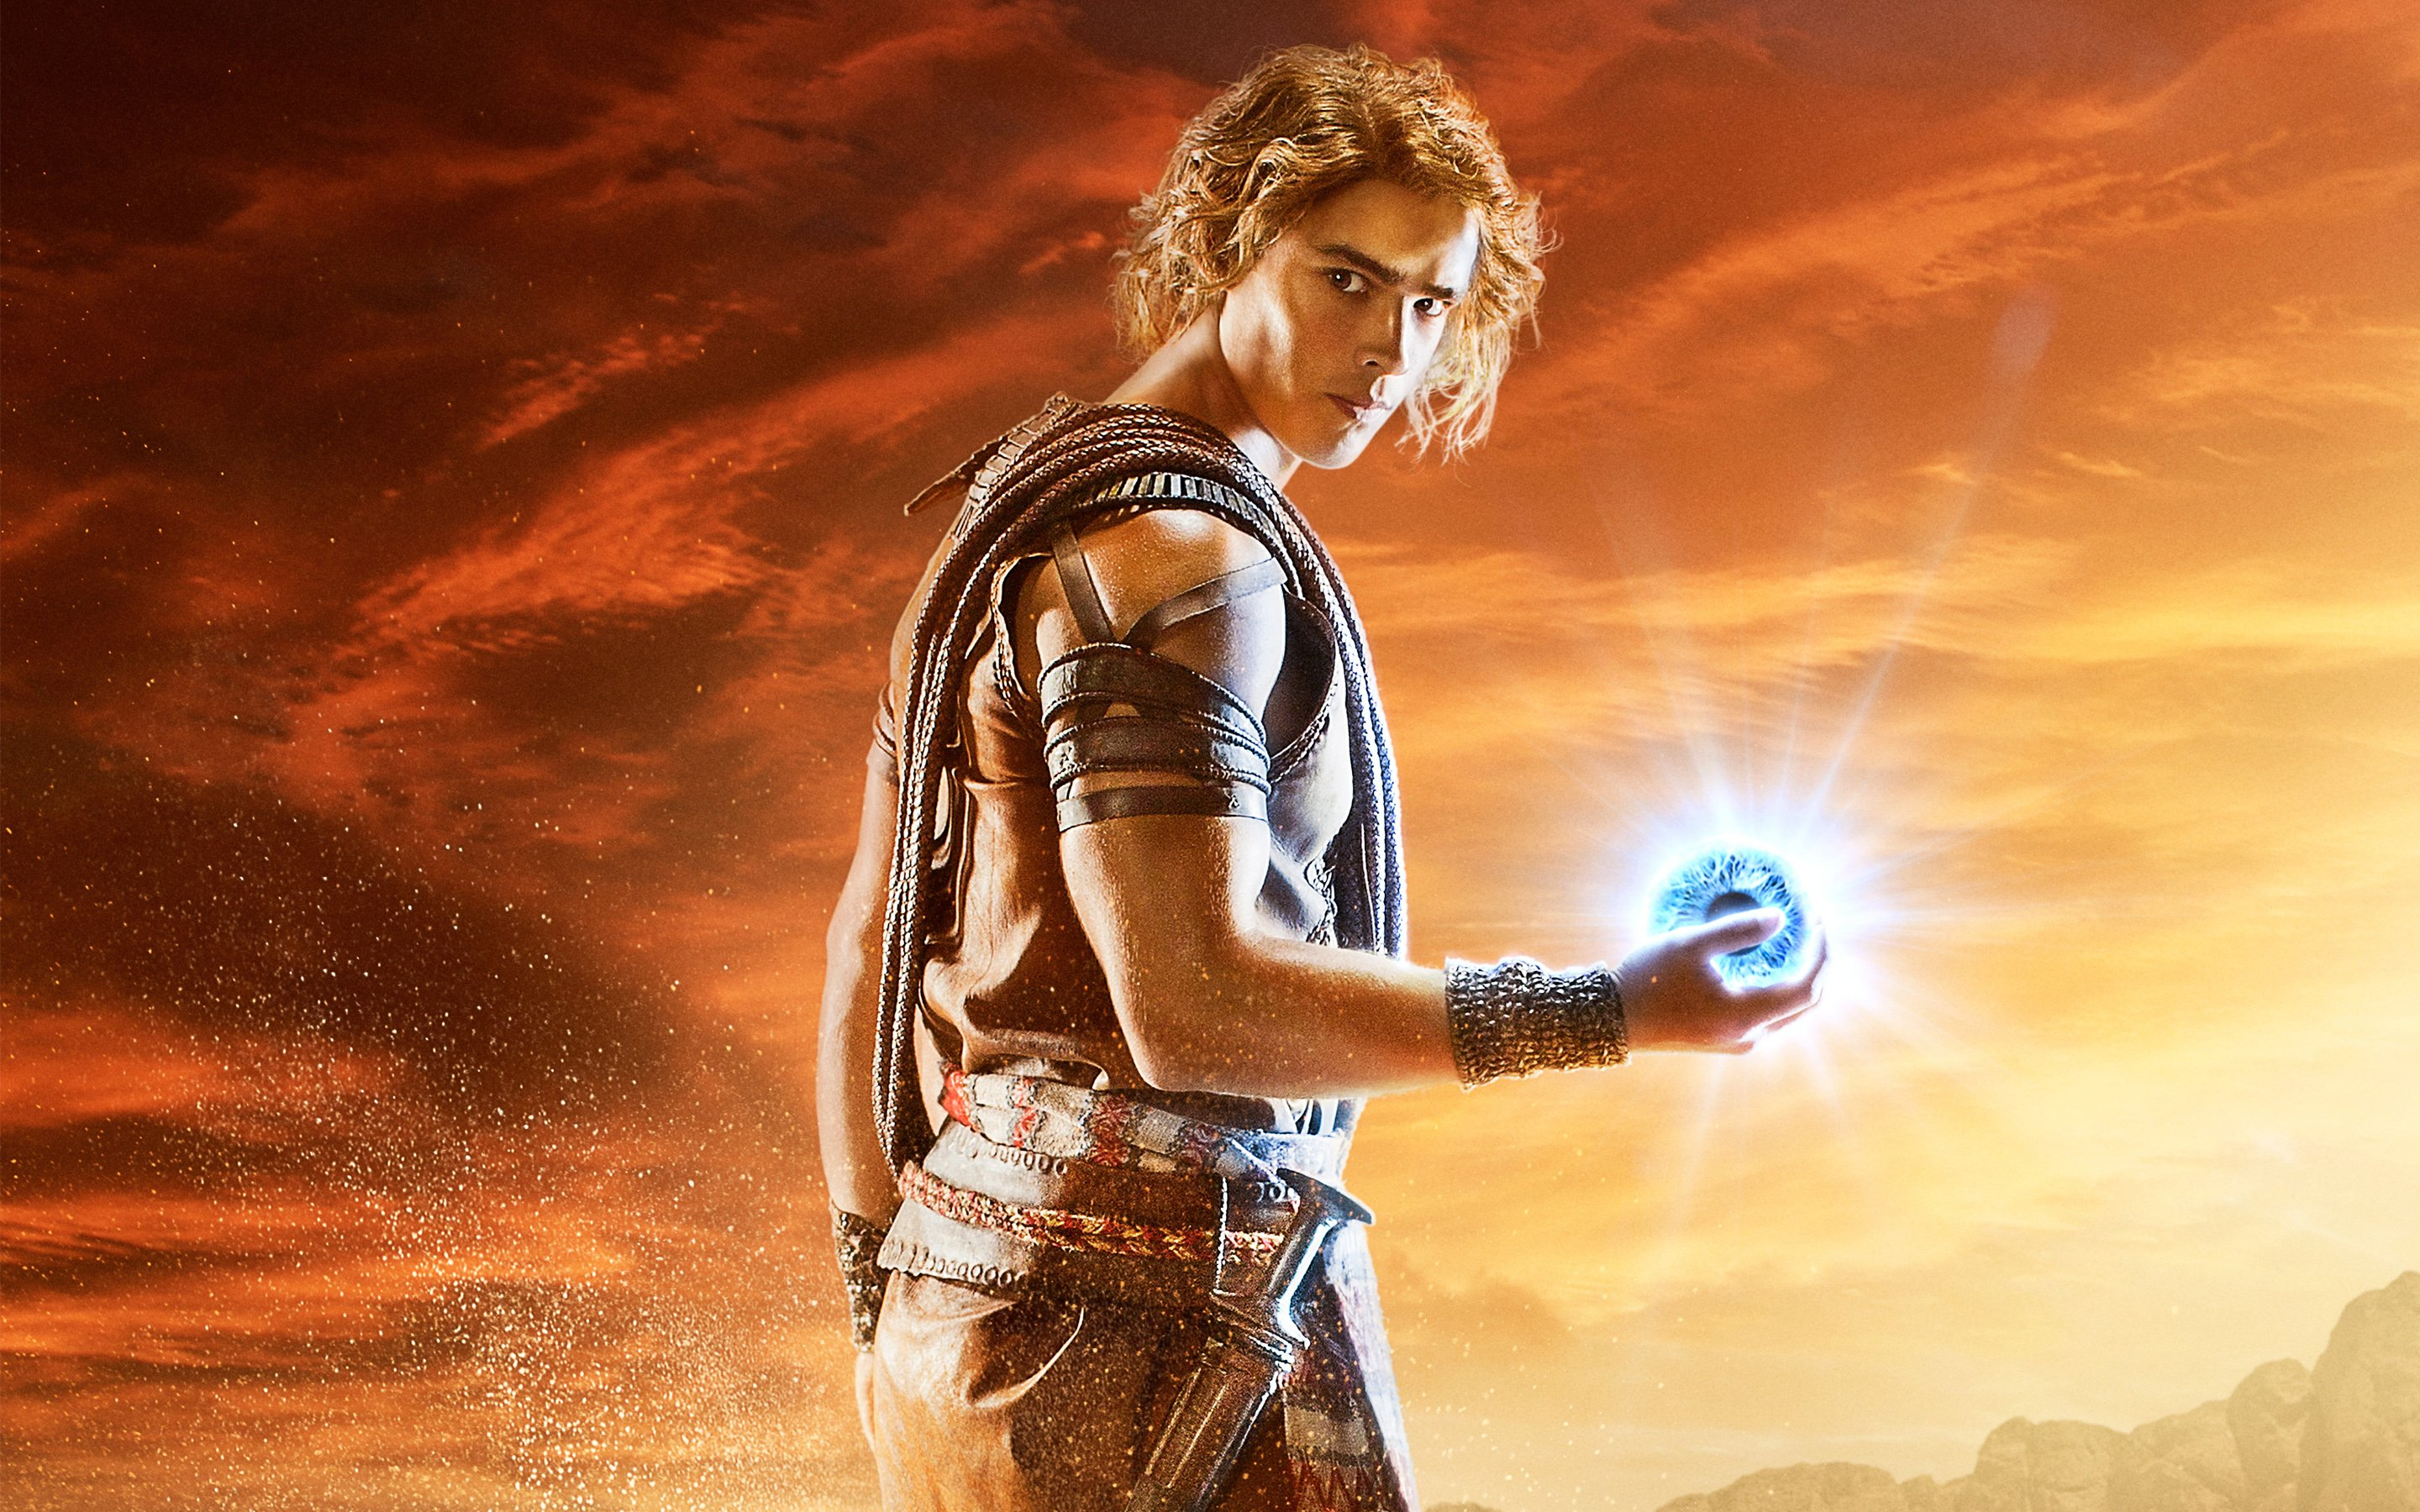 Gods of Egypt Wallpapers   My Wallpapers Hub 2880x1800